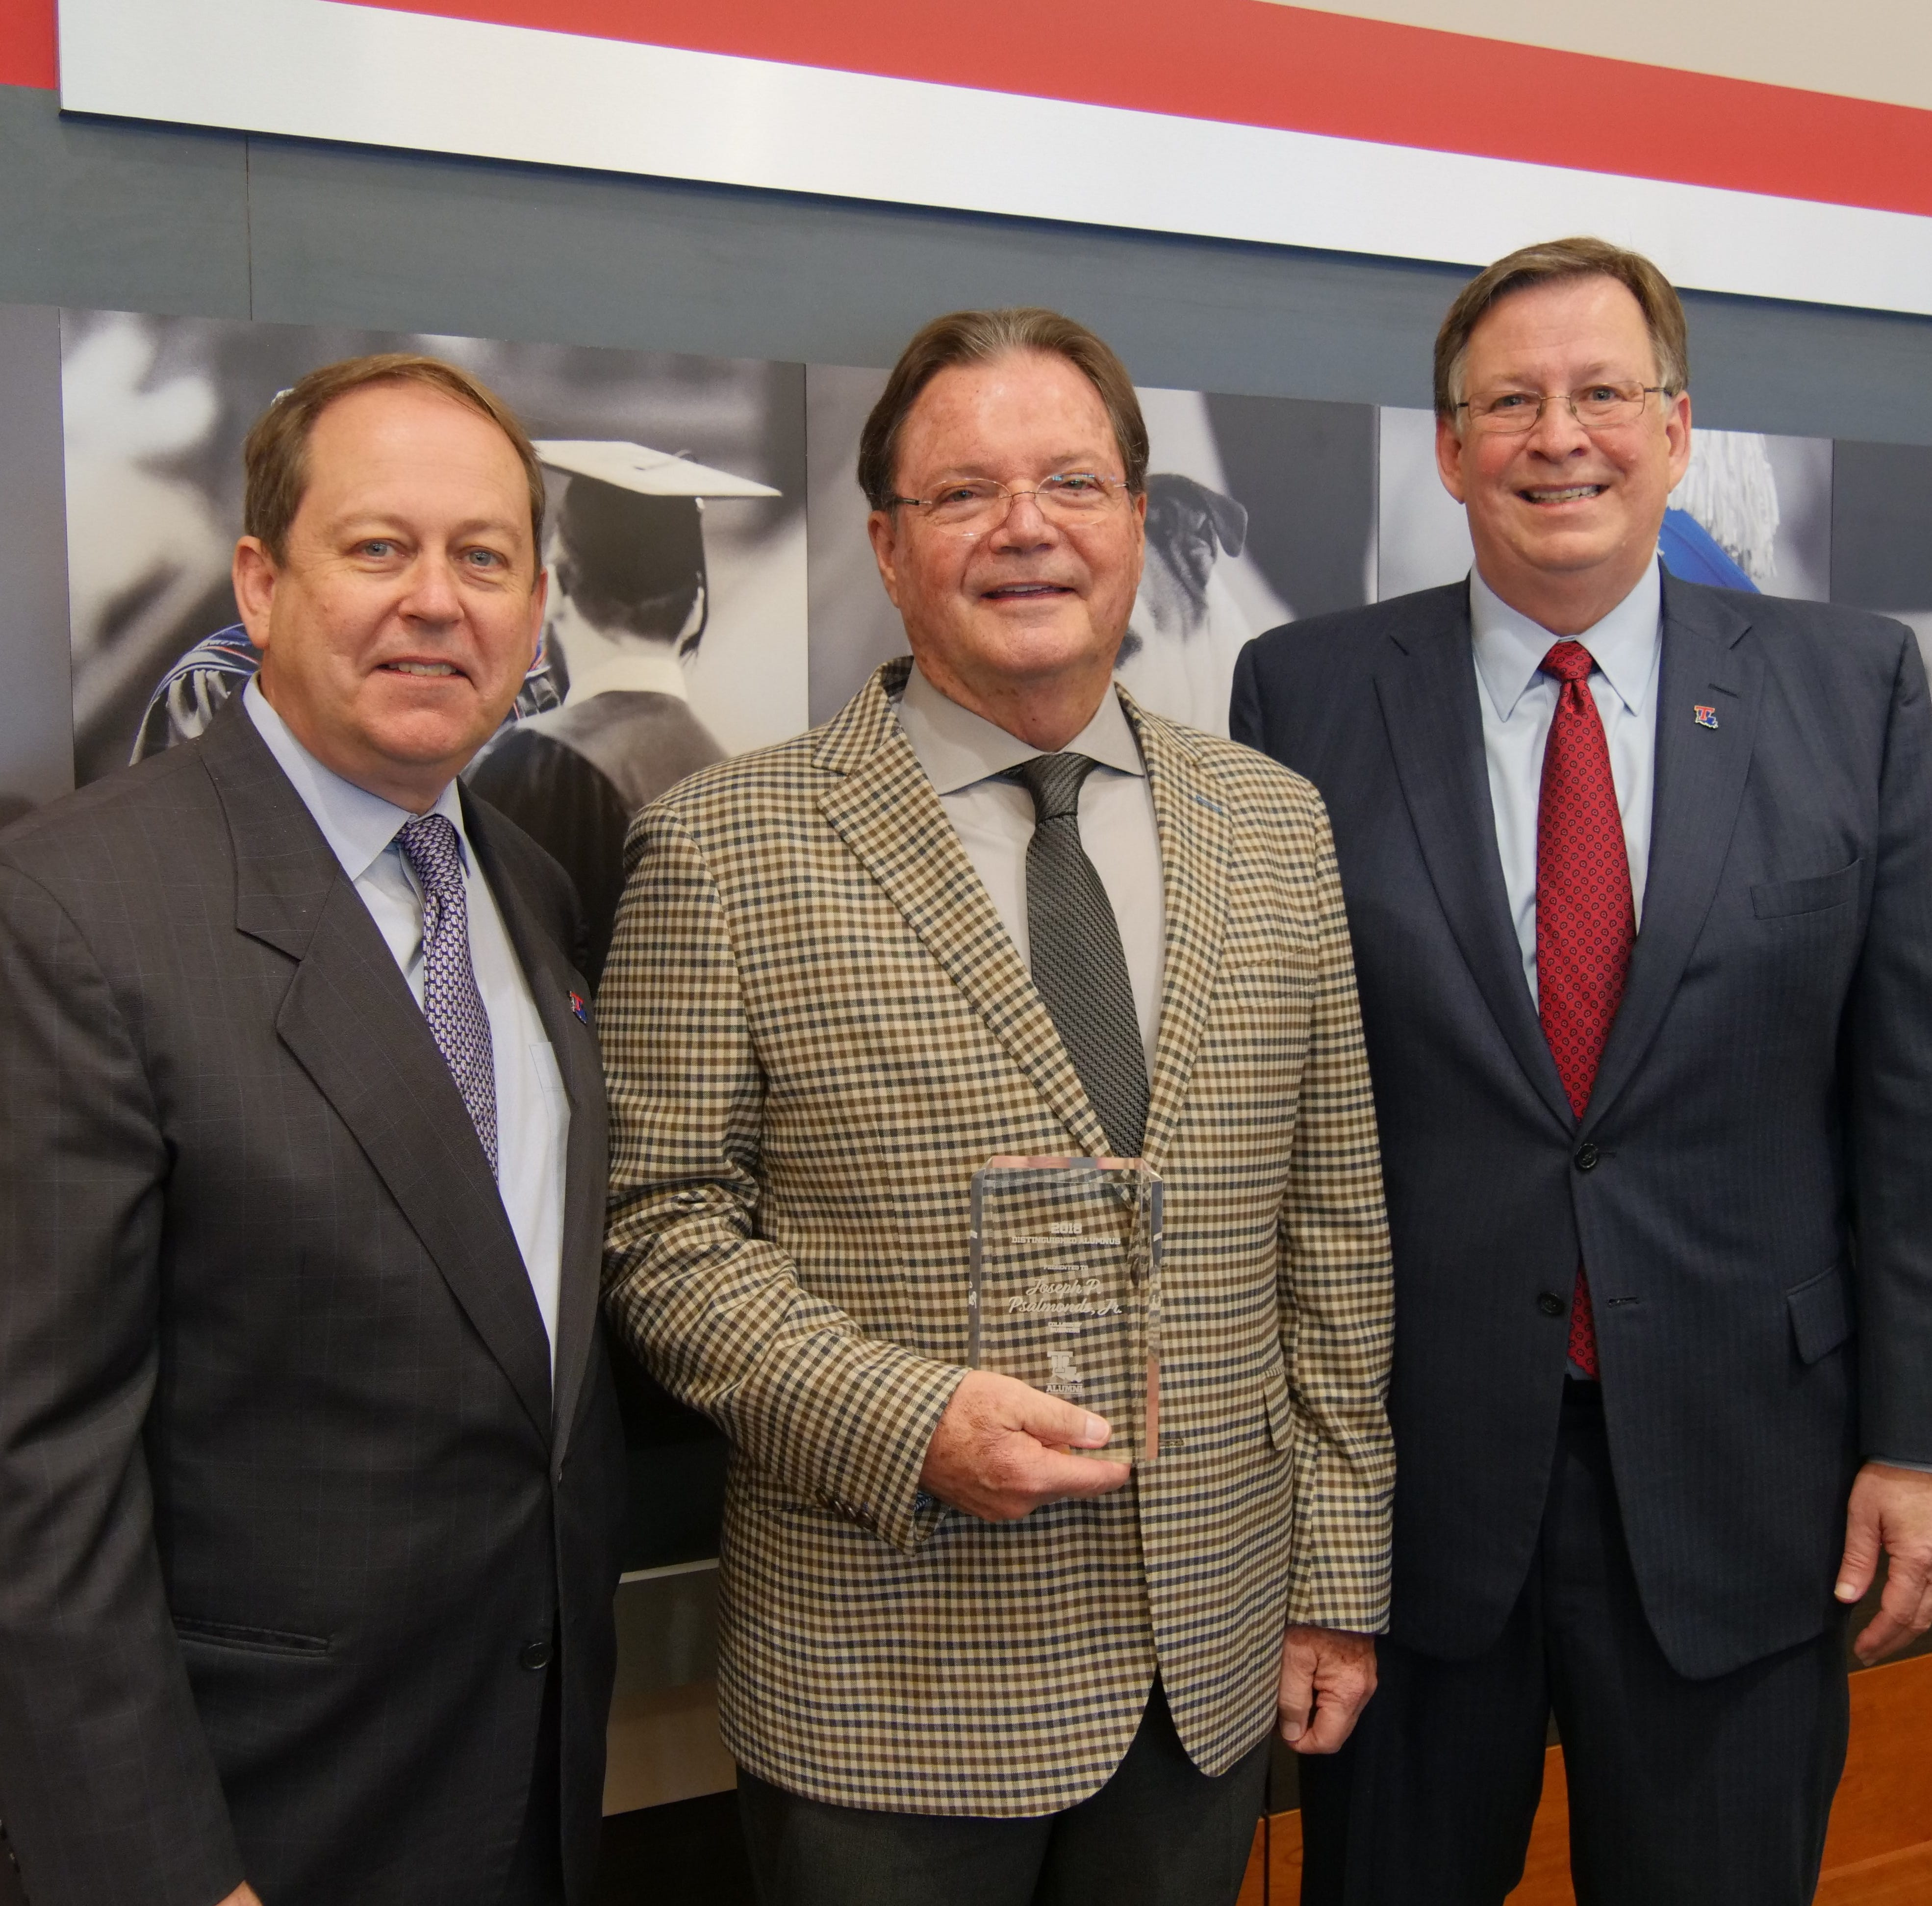 Shreveport community leader named Louisiana Tech's Business Alumnus of the Year